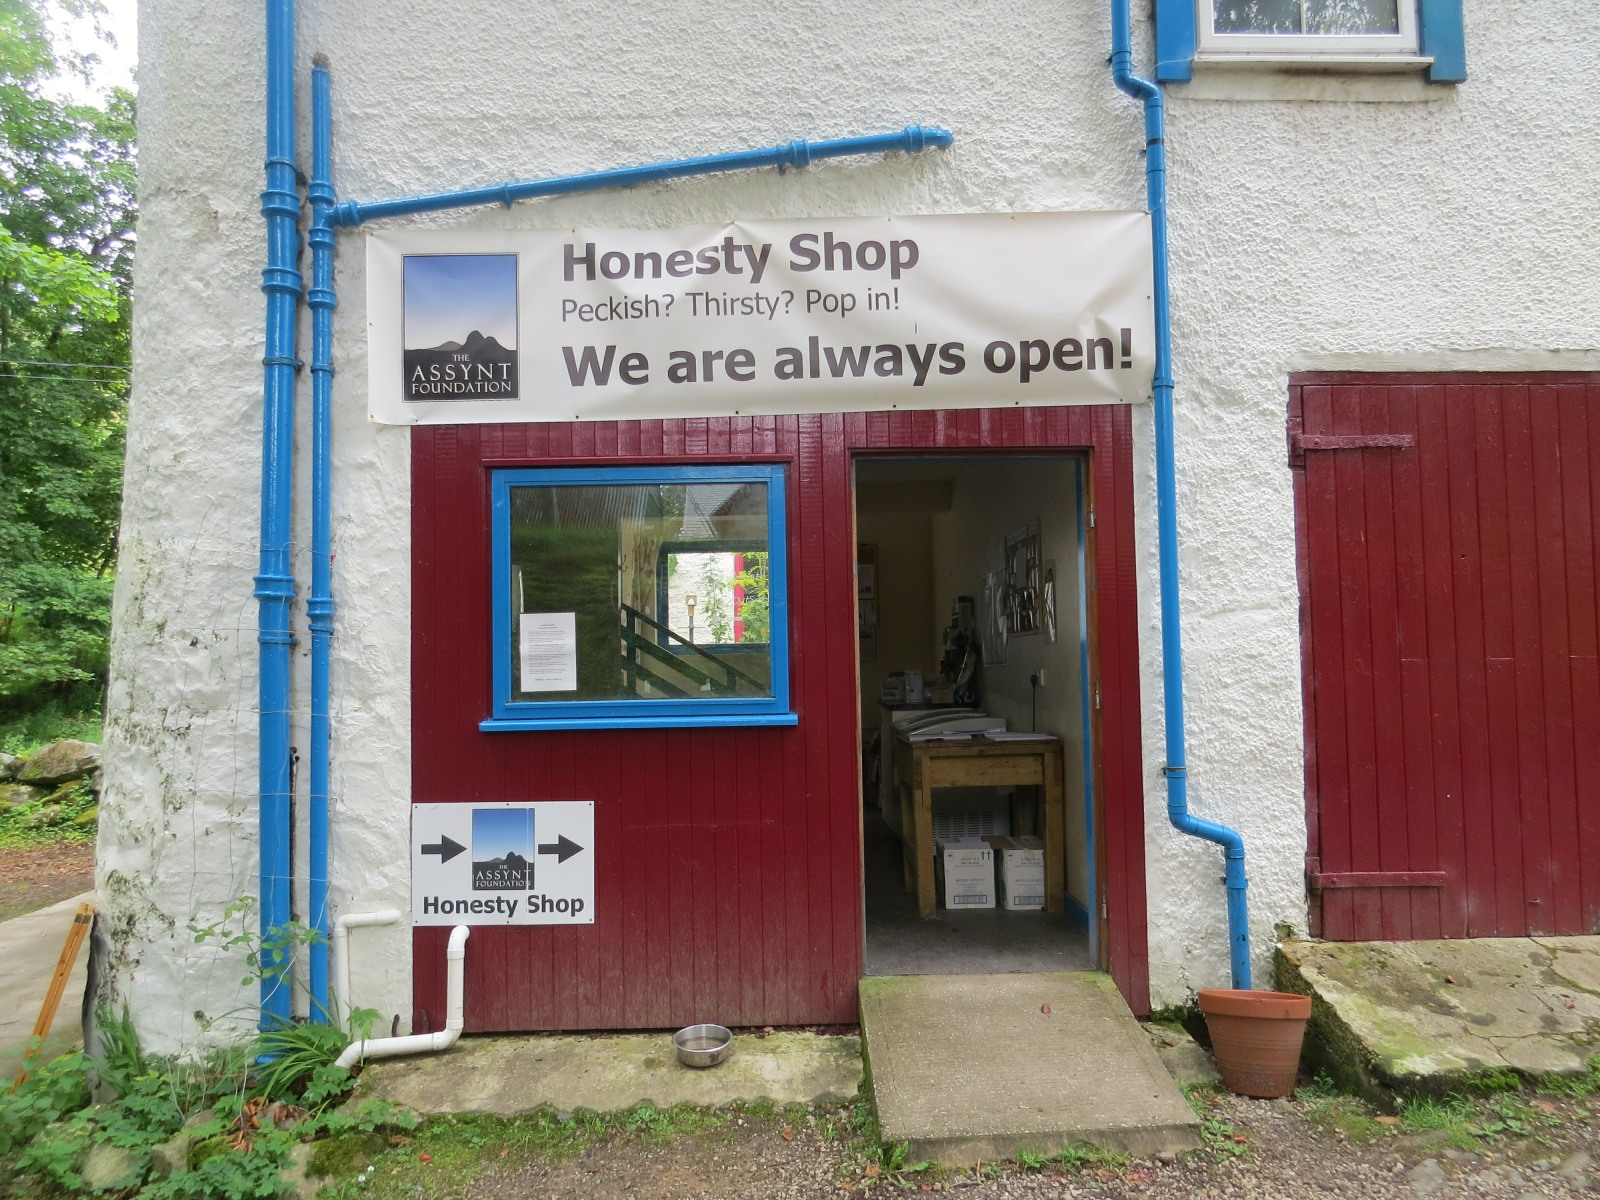 Honesty Shop, Assynt Foundation